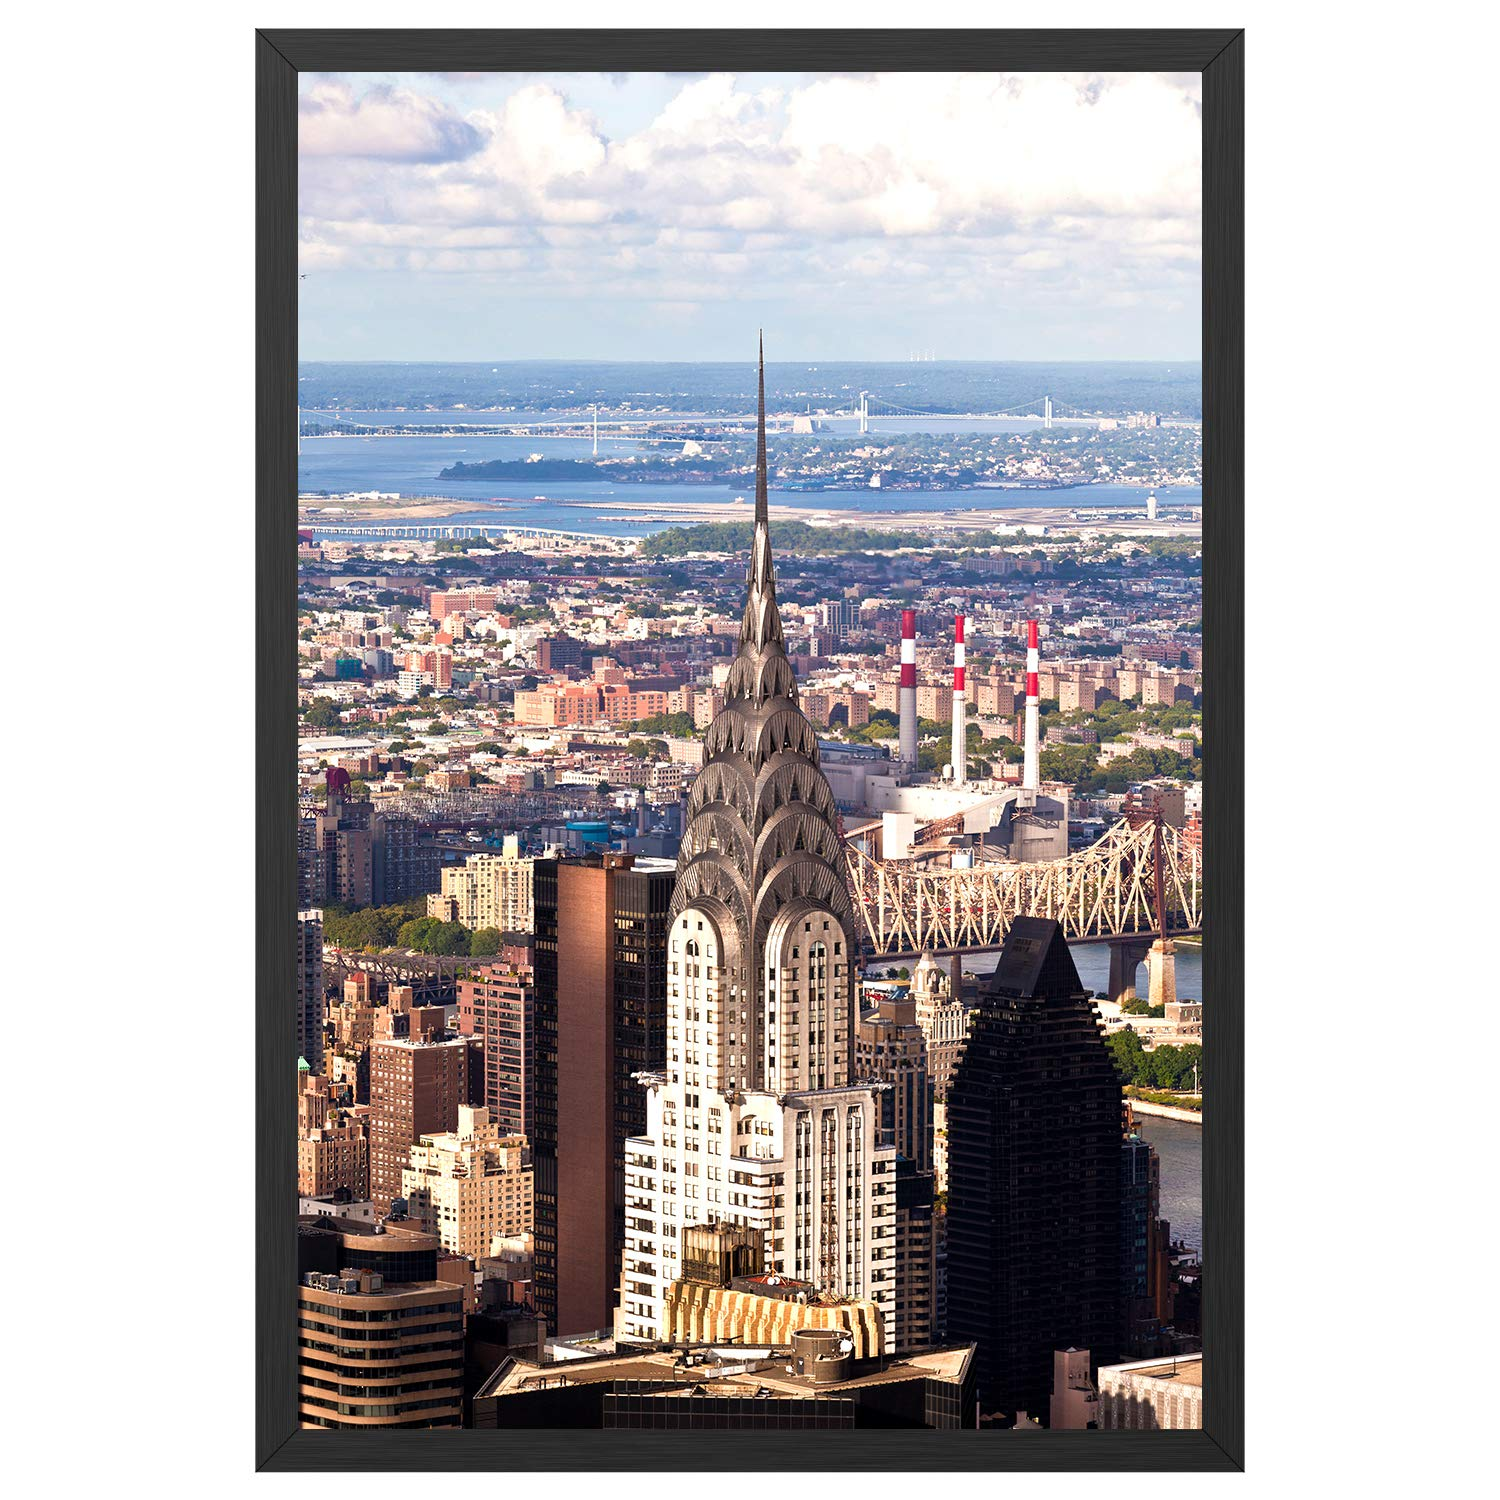 ONE WALL 24x36 Inch Poster Frame, Black Aluminum Movie Poster Frame for Photo Picture Poster Artwork Wall Hanging - Wall Mounting Hardware Included